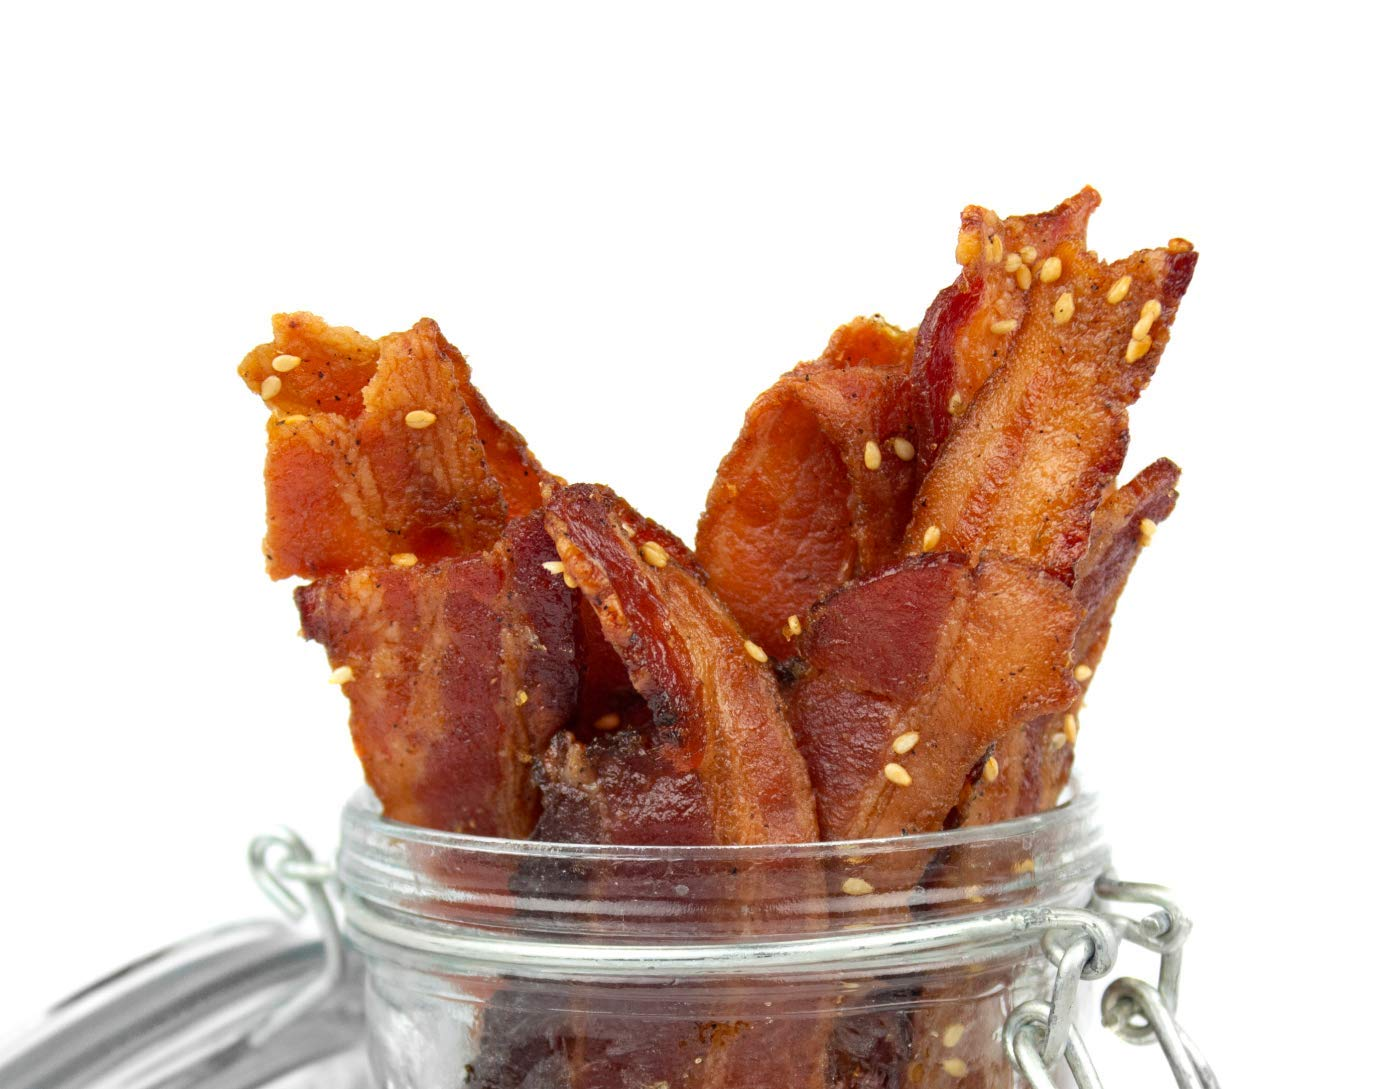 Delicious Uncured Real Bacon Jerky Hand Crafted Small Batch Korean BBQ Paleo Friendly MSG Free Nitrate & Nitrite Free (Korean BBQ Paleo, 3 pack)